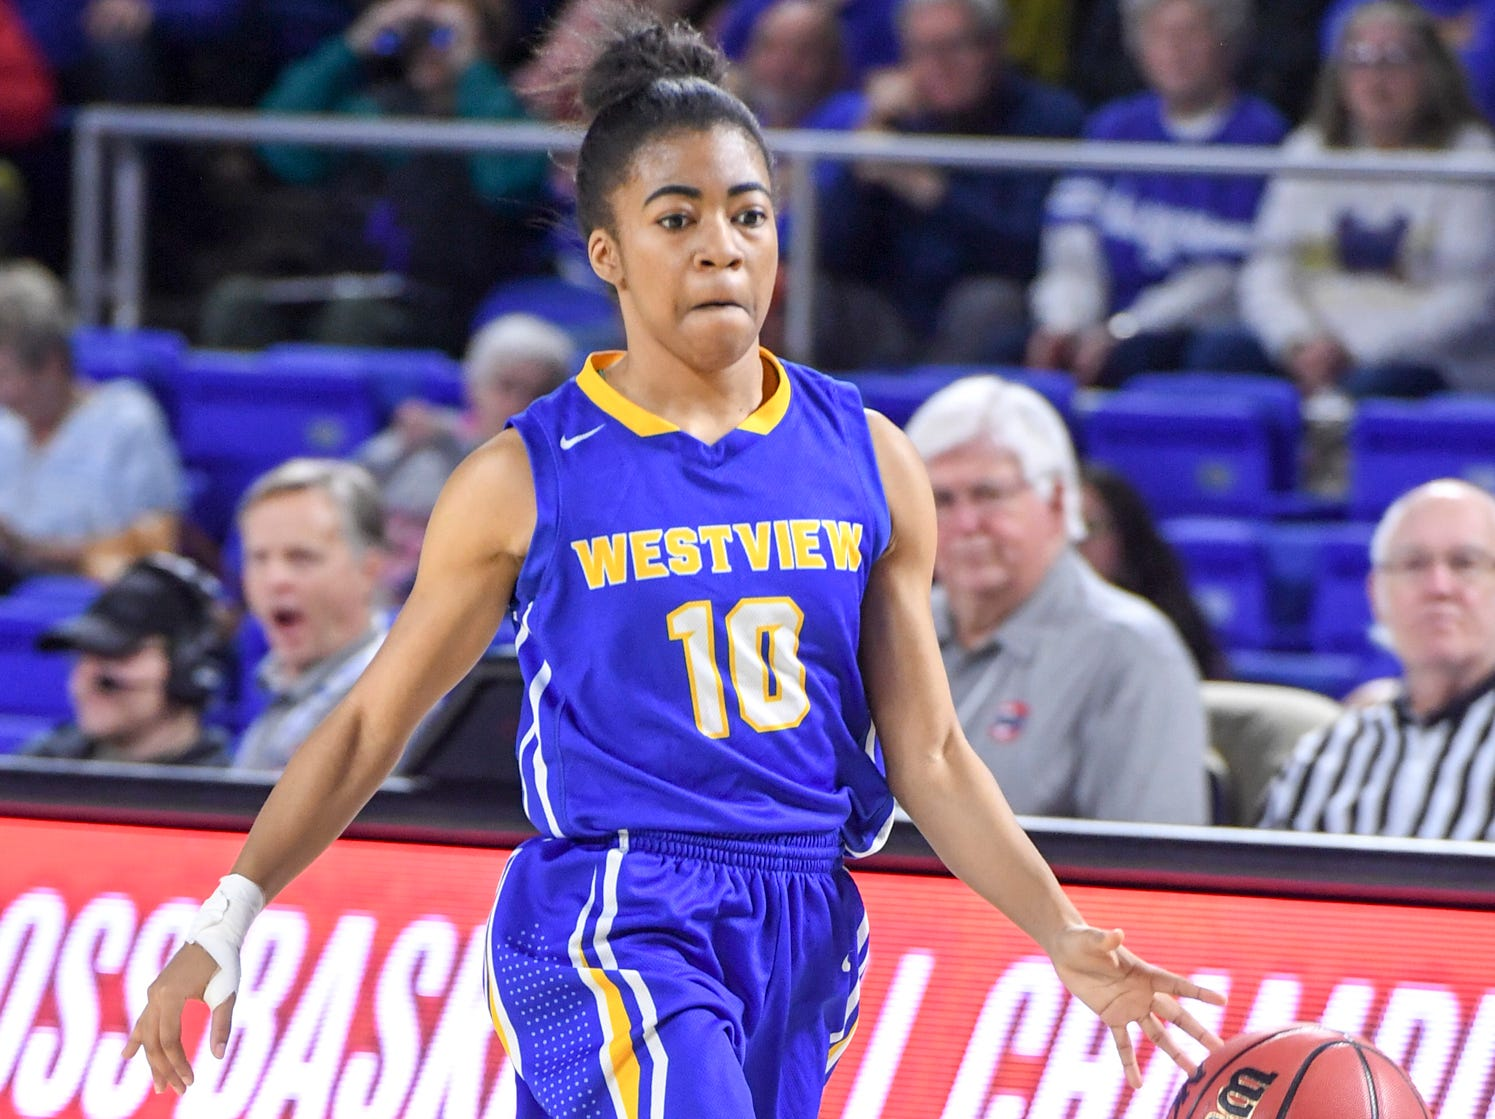 Westview's Zanasha Gadlen (10) scored 3 points in the first half of their Class AA championship game against Cheatham County, Saturday, March 9, 2019, in Murfreesboro.